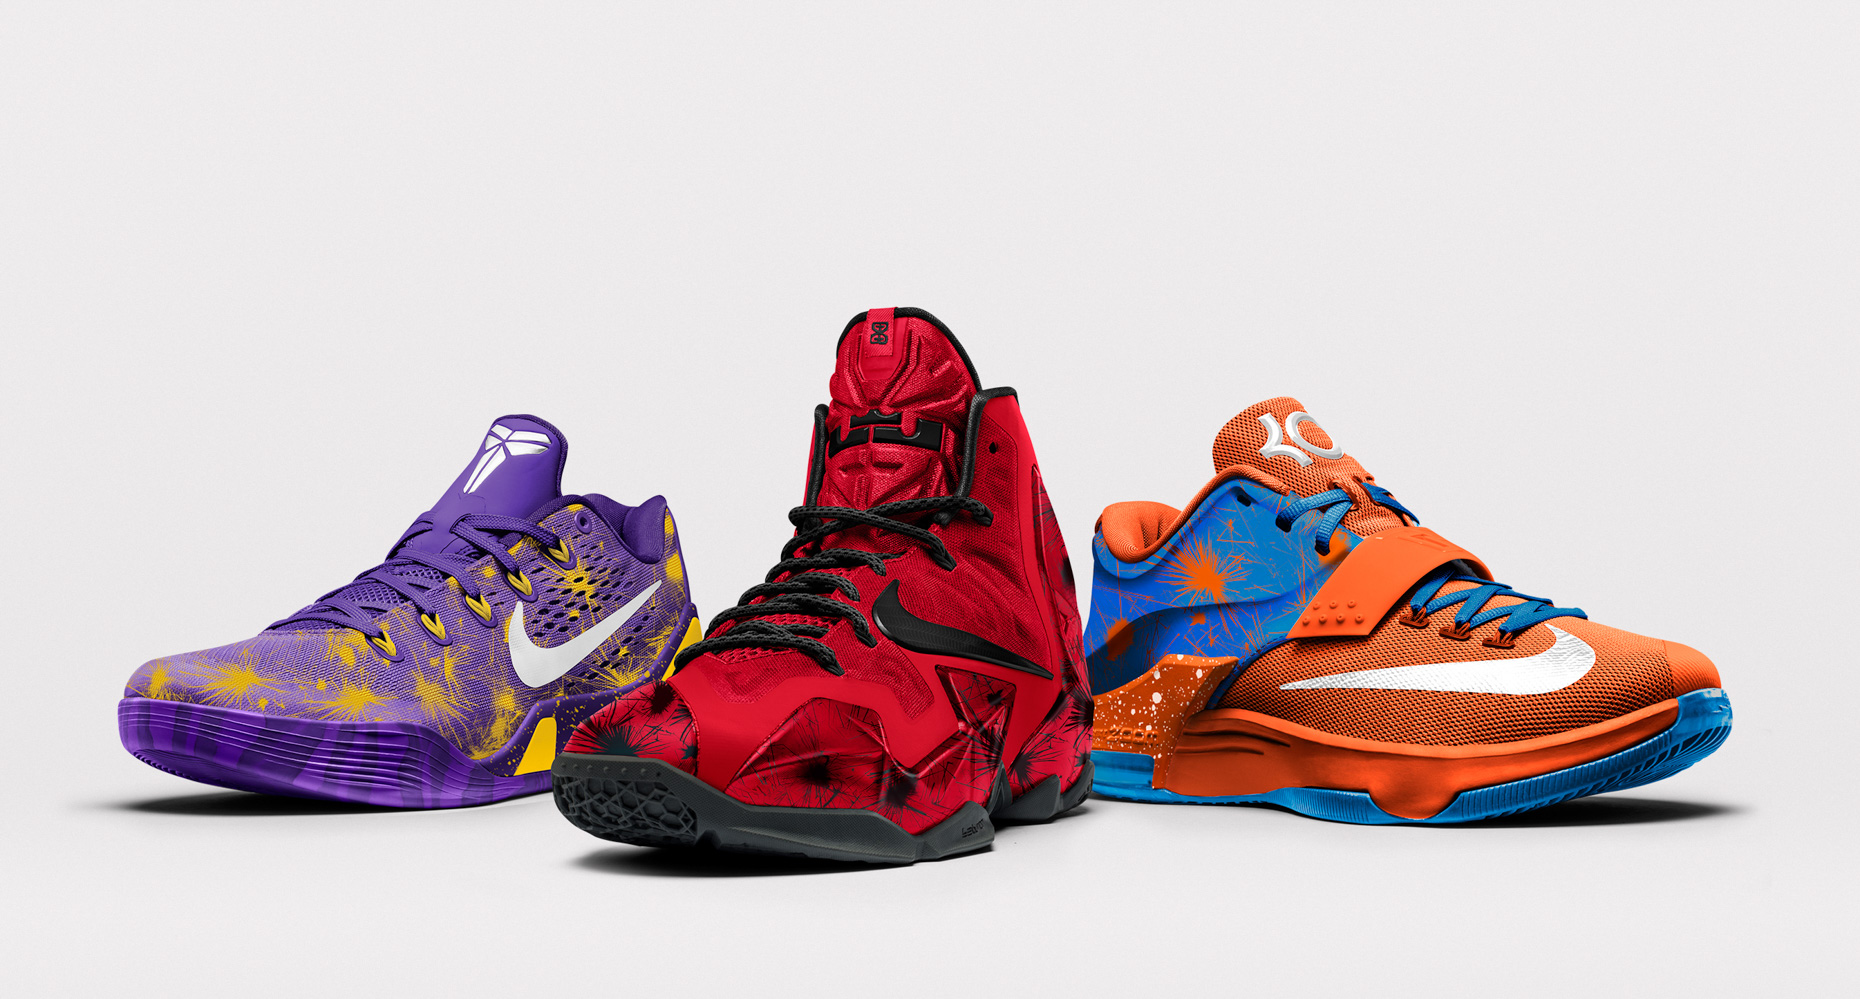 44110_239799_NikeiD_Fa14_KD_Fireworks_Coll_group_crop_1_full